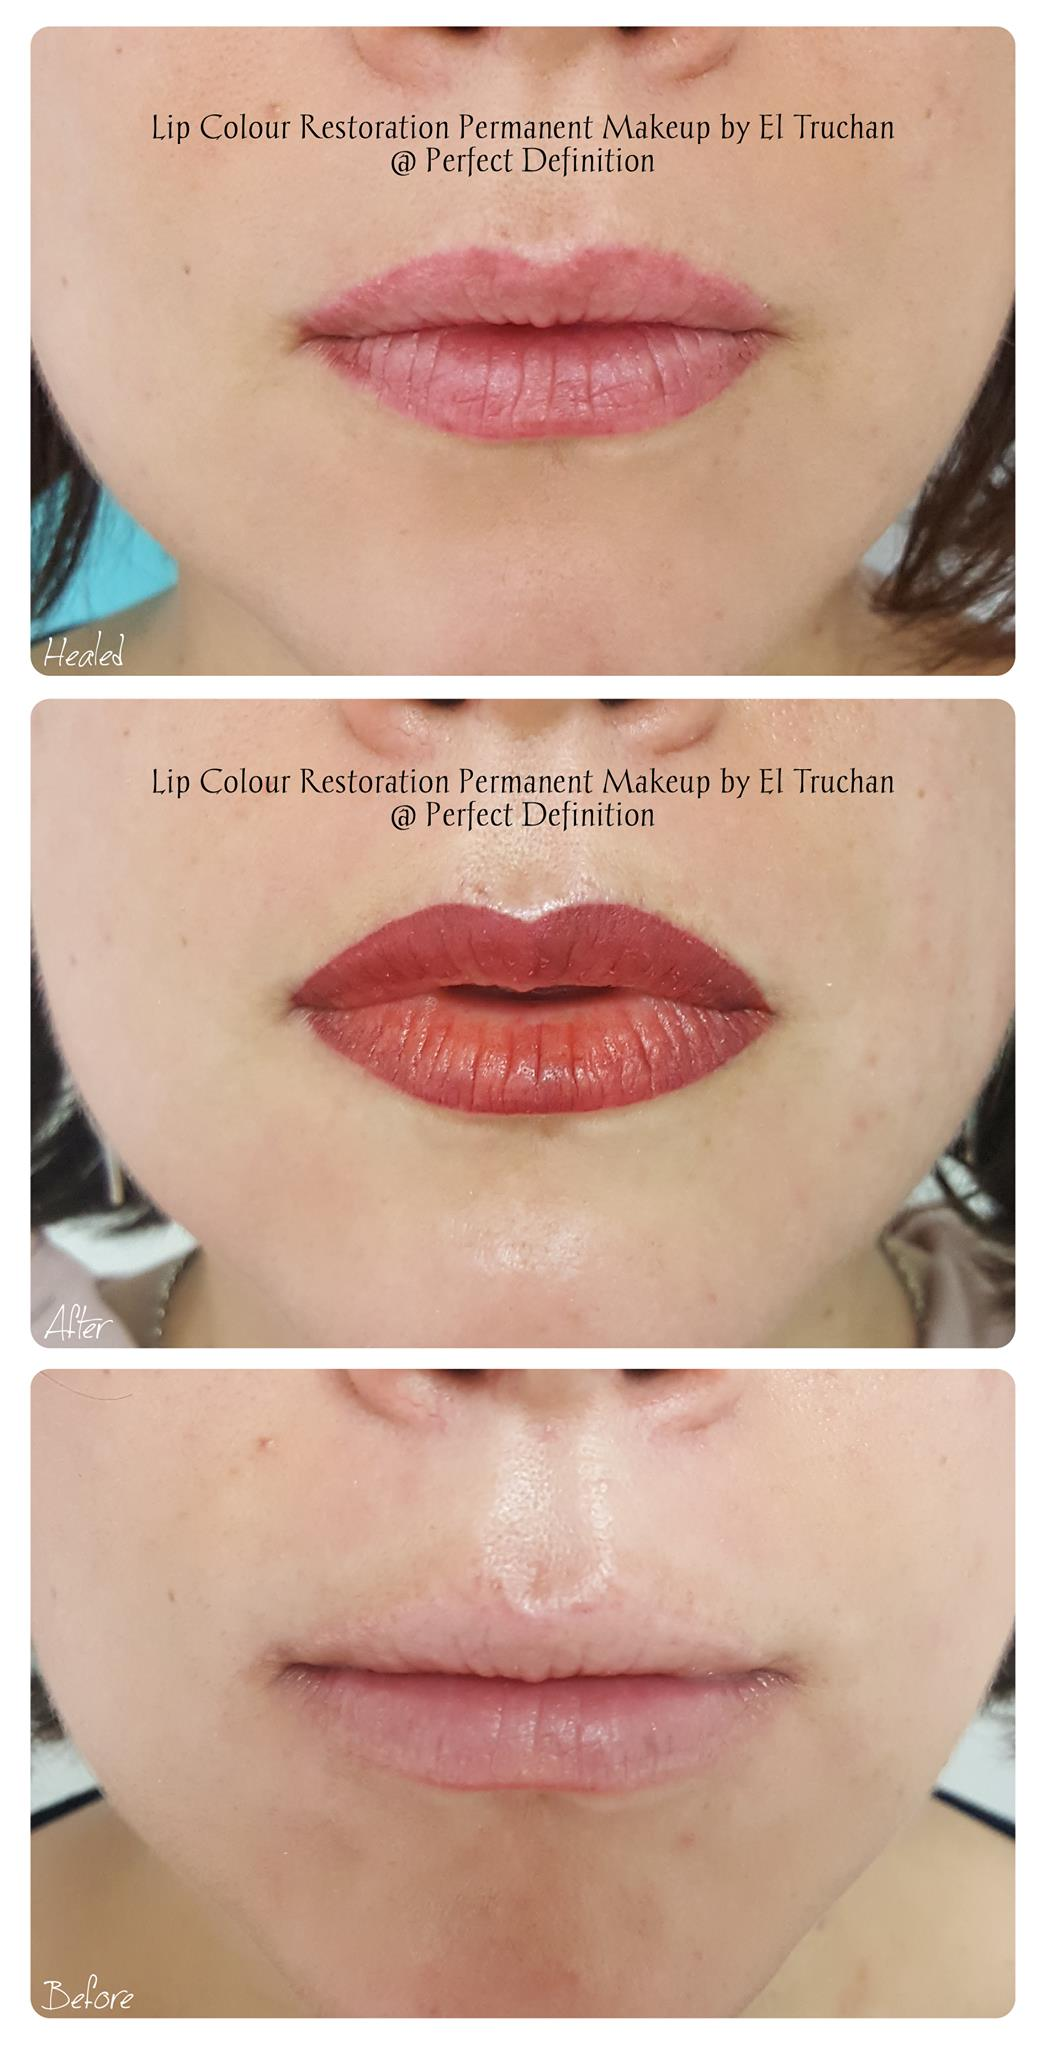 Lip colour and shape restoration